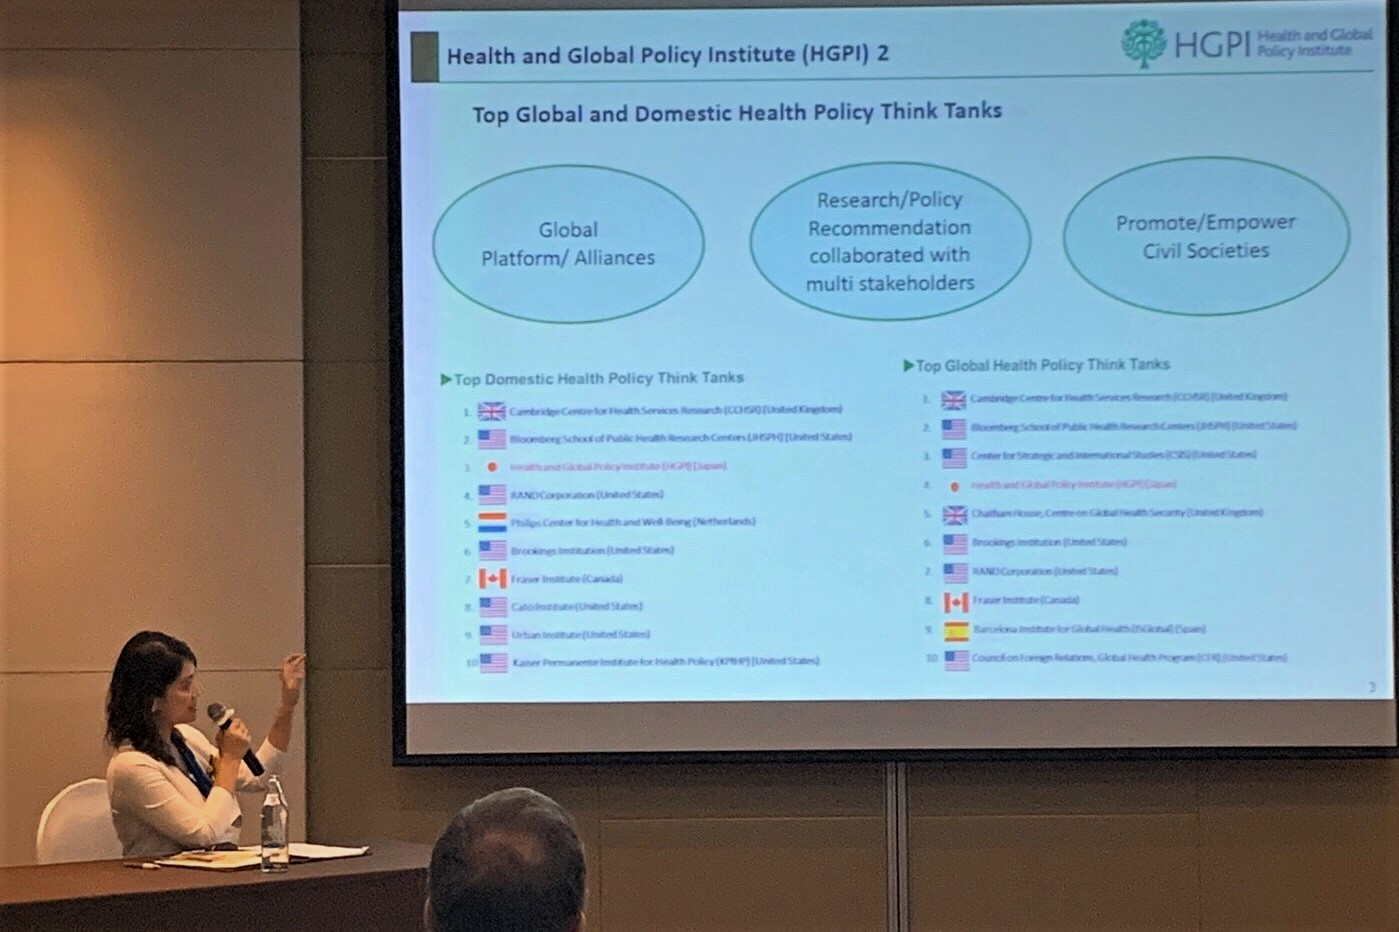 [Lecture Report] The 51st Asia-Pacific Academic Consortium for Public Health (APACPH) (Hosted by Mahidol University School of Public Health, November 21, 22, 2019, Bangkok, Thailand)